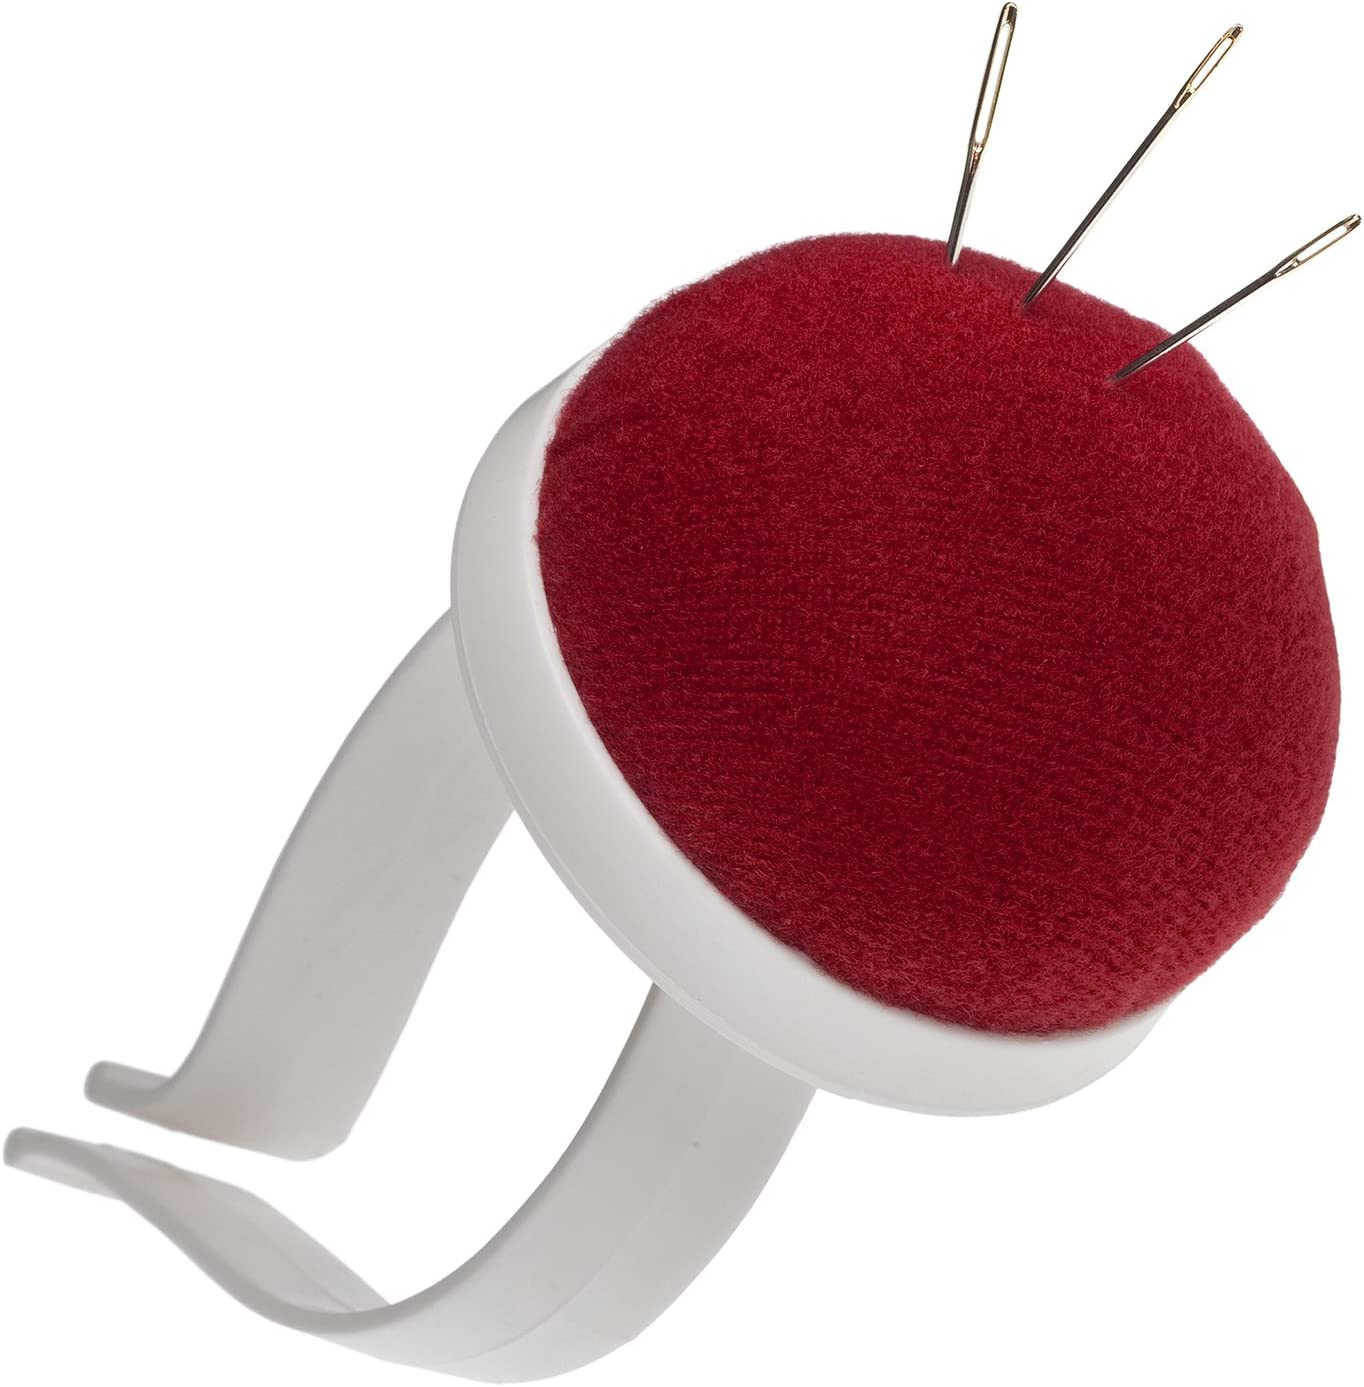 Arm pin cushion pin cushion for the wrist in red with plastic bangle